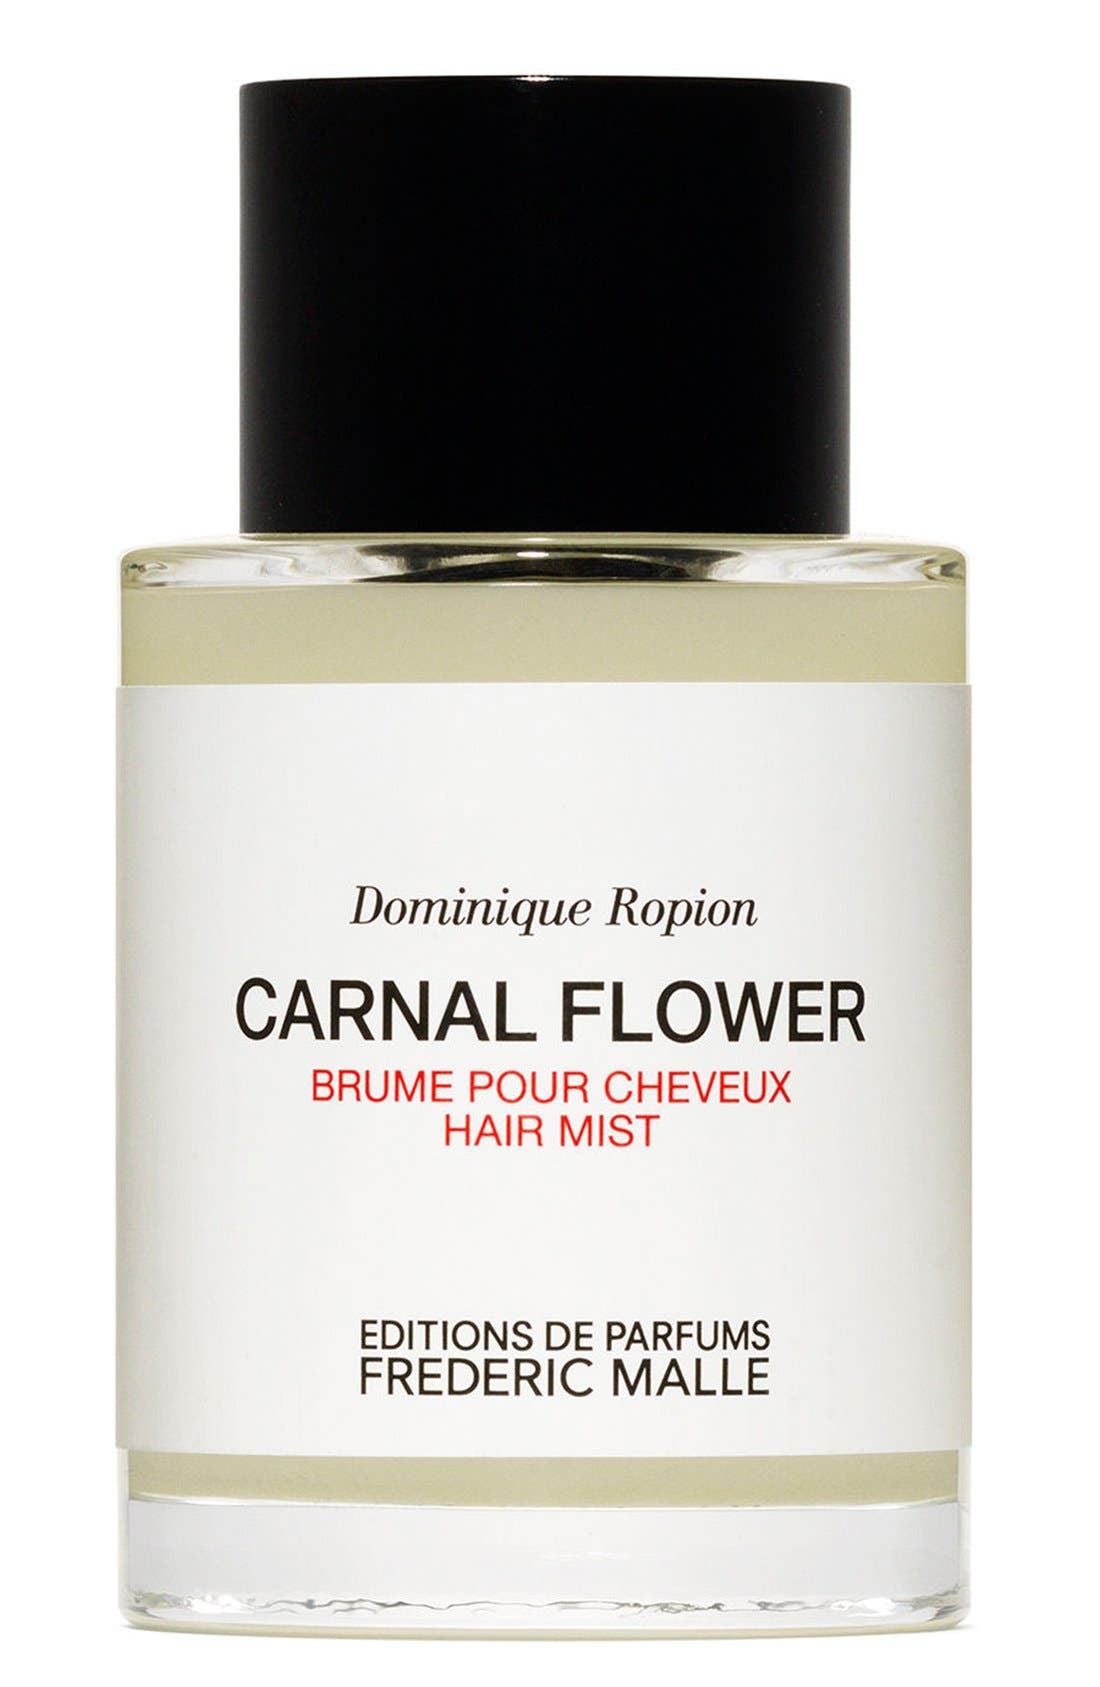 Editions de Parfums Frédéric Malle Carnal Flower Hair Mist